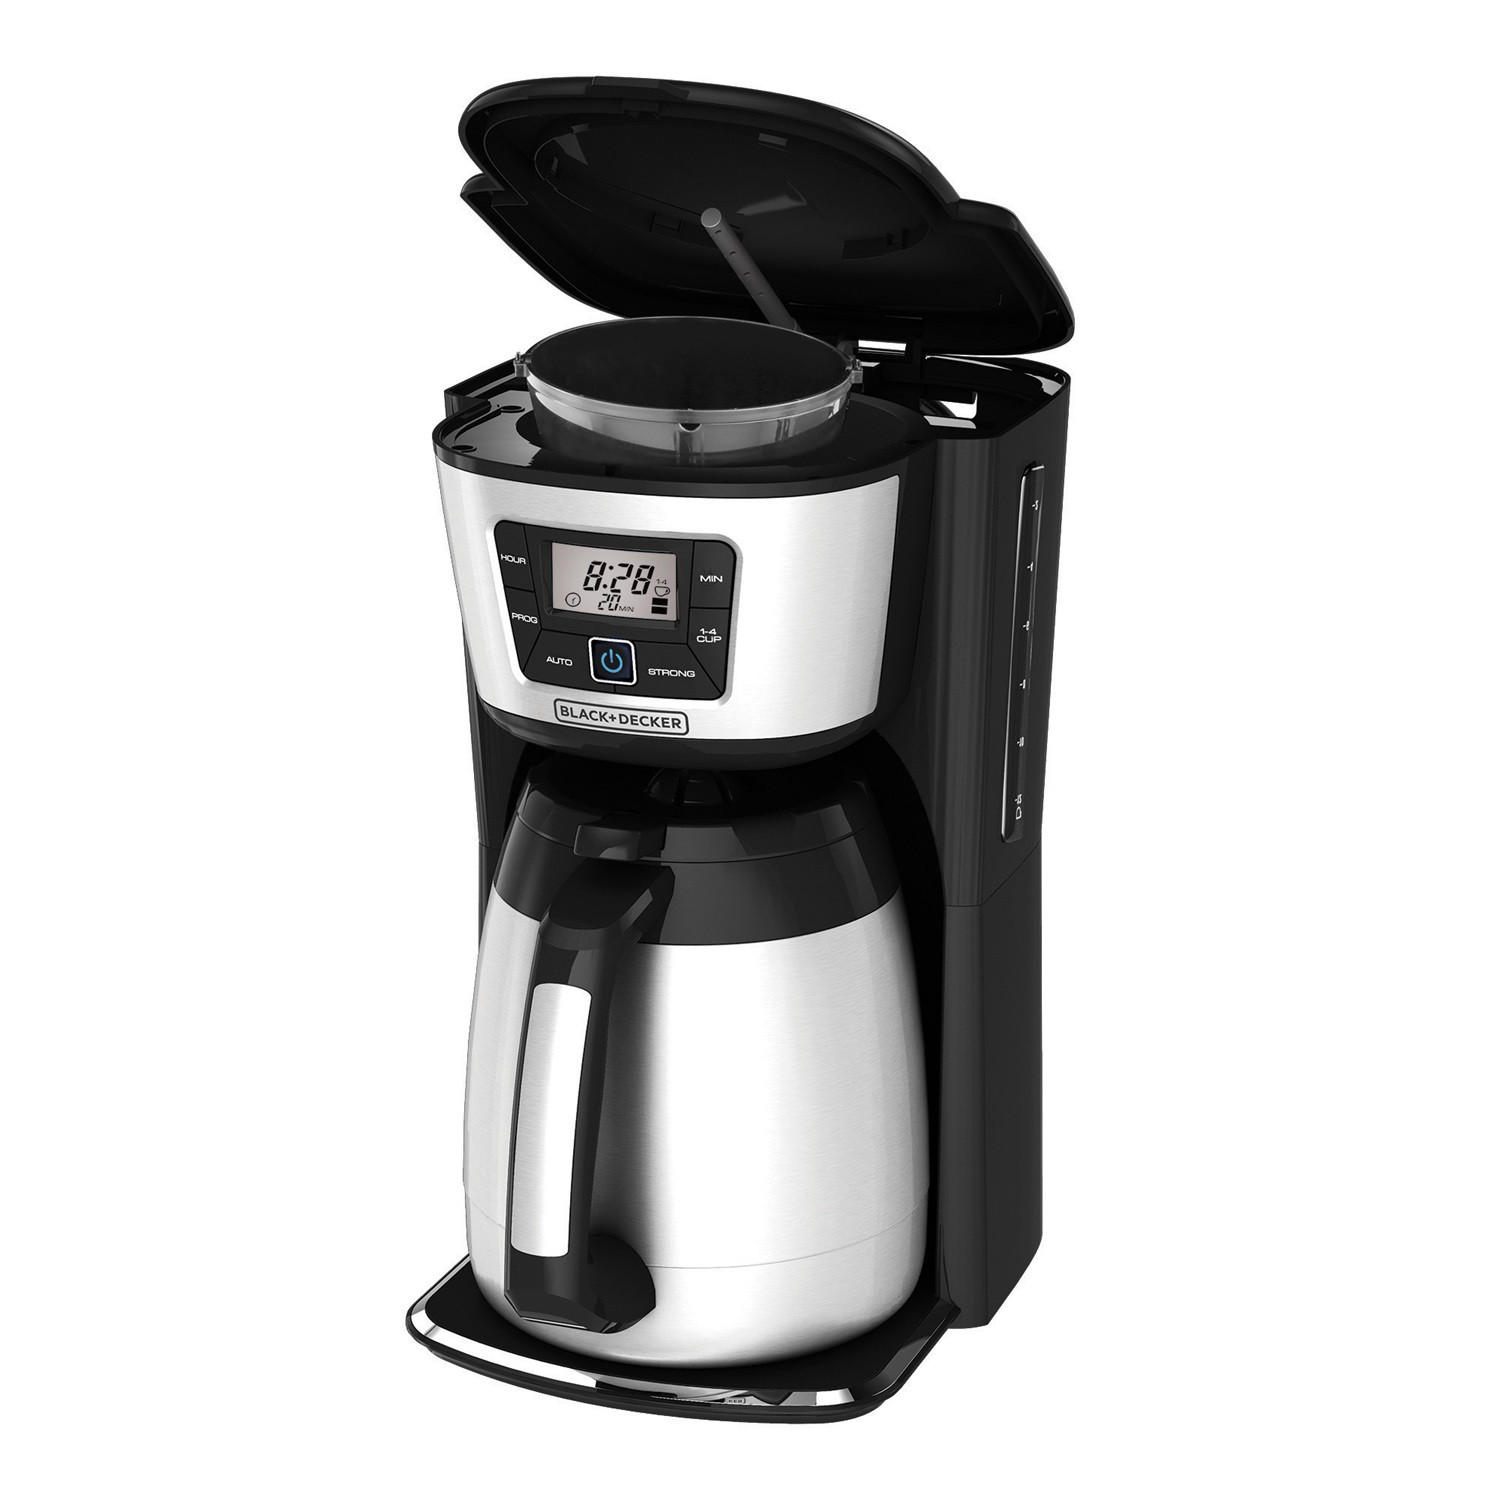 BLACK+DECKER 12-Cup Programmable Coffee Maker with Thermal Carafe, CM2035B